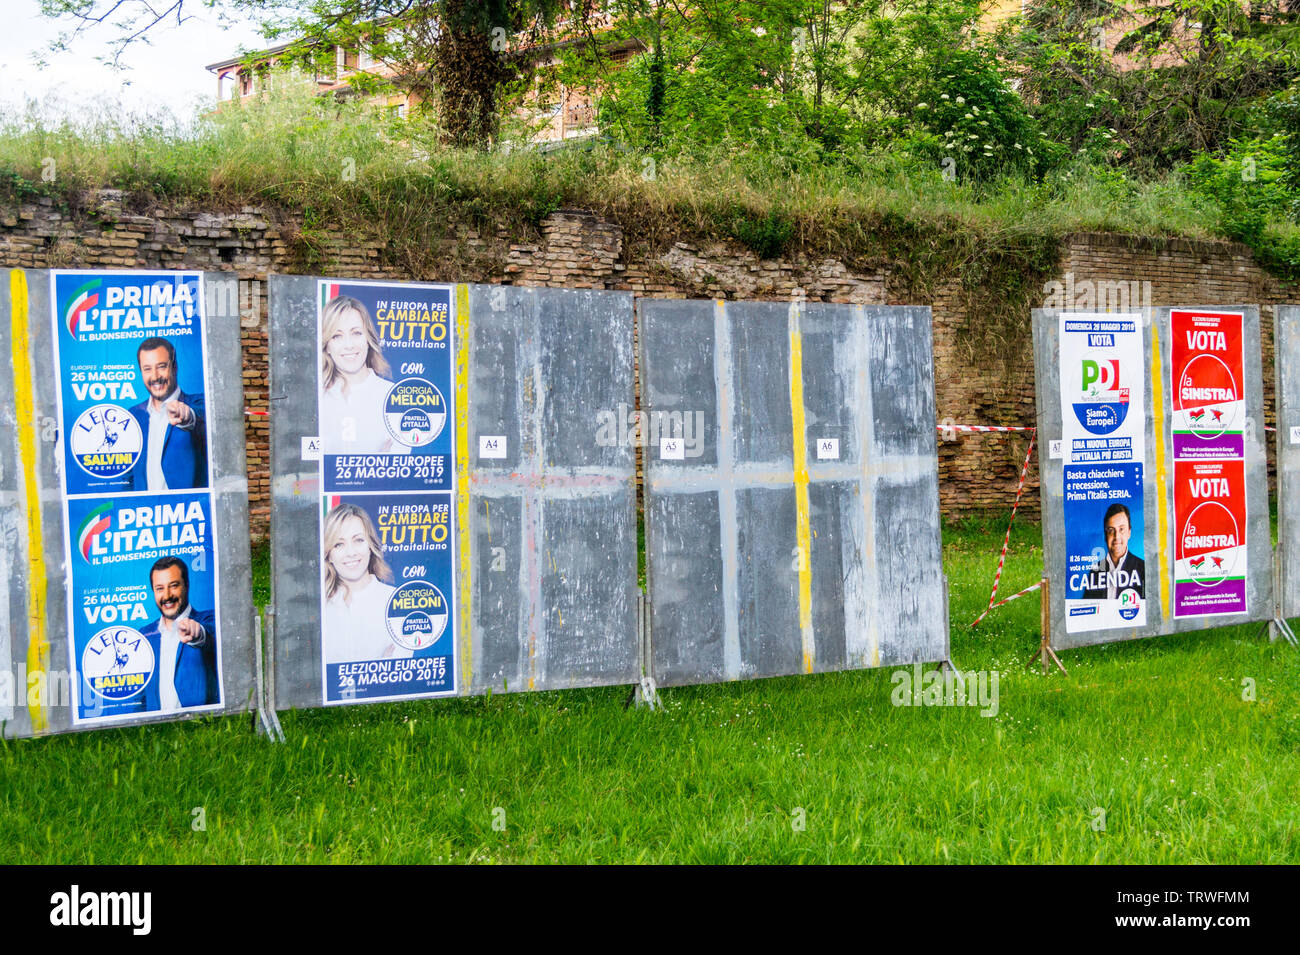 candidate-posters-for-the-european-parliamentary-elections-ravenna-emilia-romagna-italy-TRWFMM.jpg